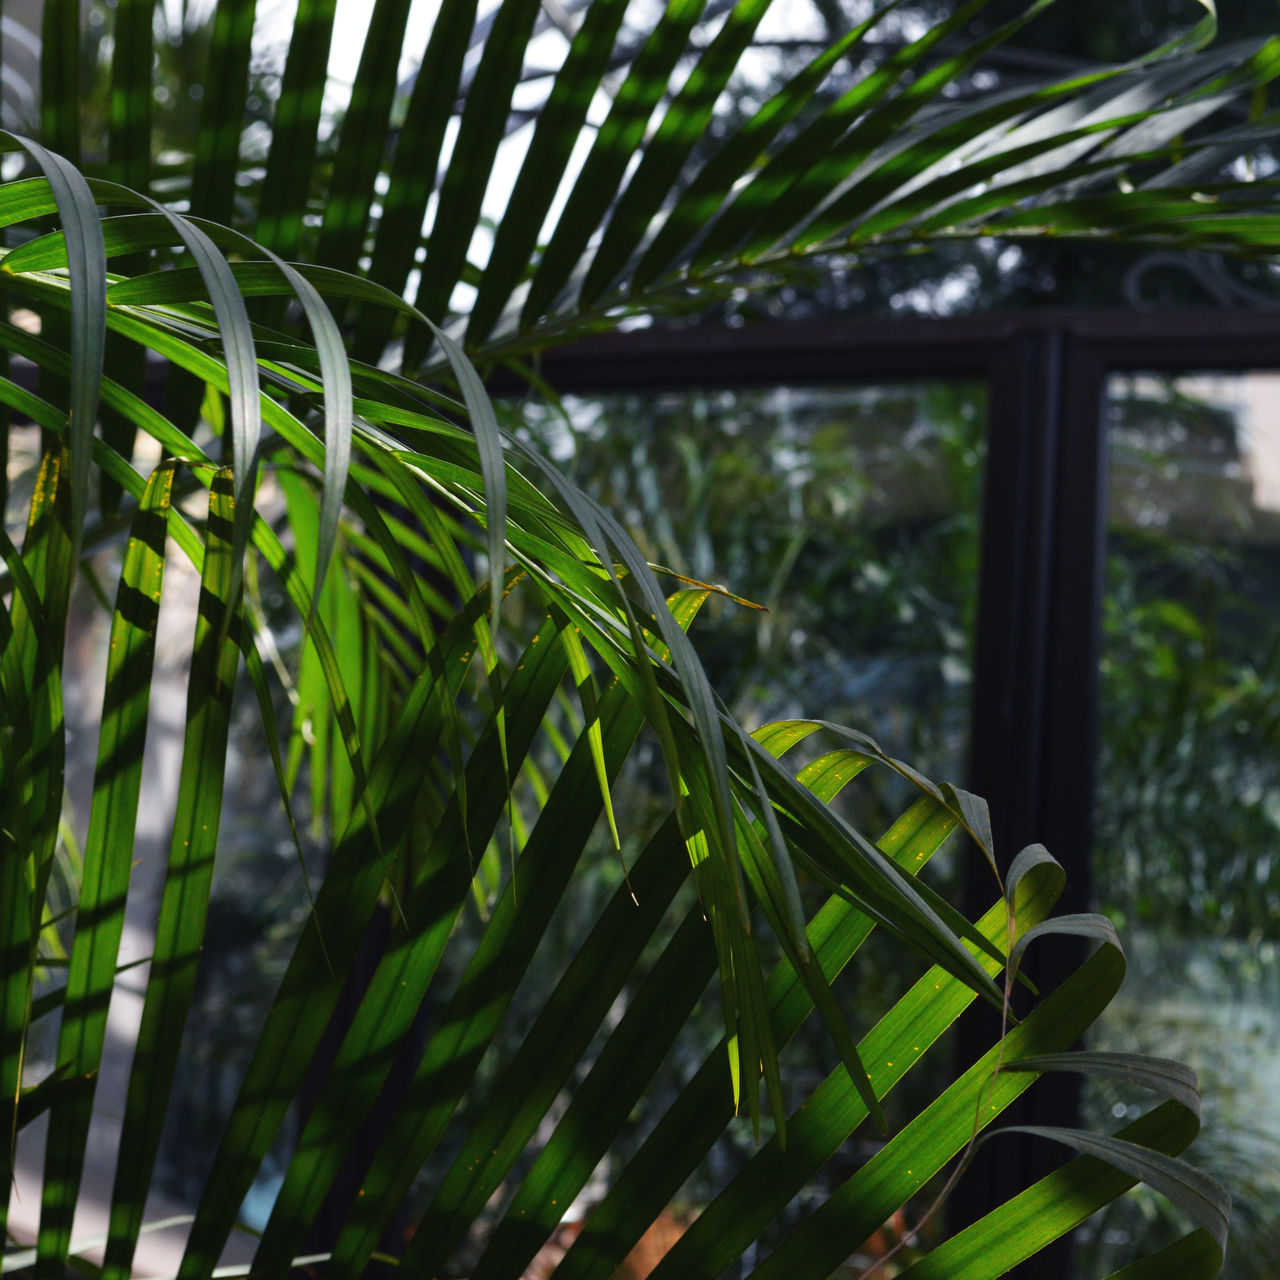 growth, green color, plant, leaf, nature, beauty in nature, close-up, no people, day, outdoors, grass, tree, frond, greenhouse, fragility, freshness